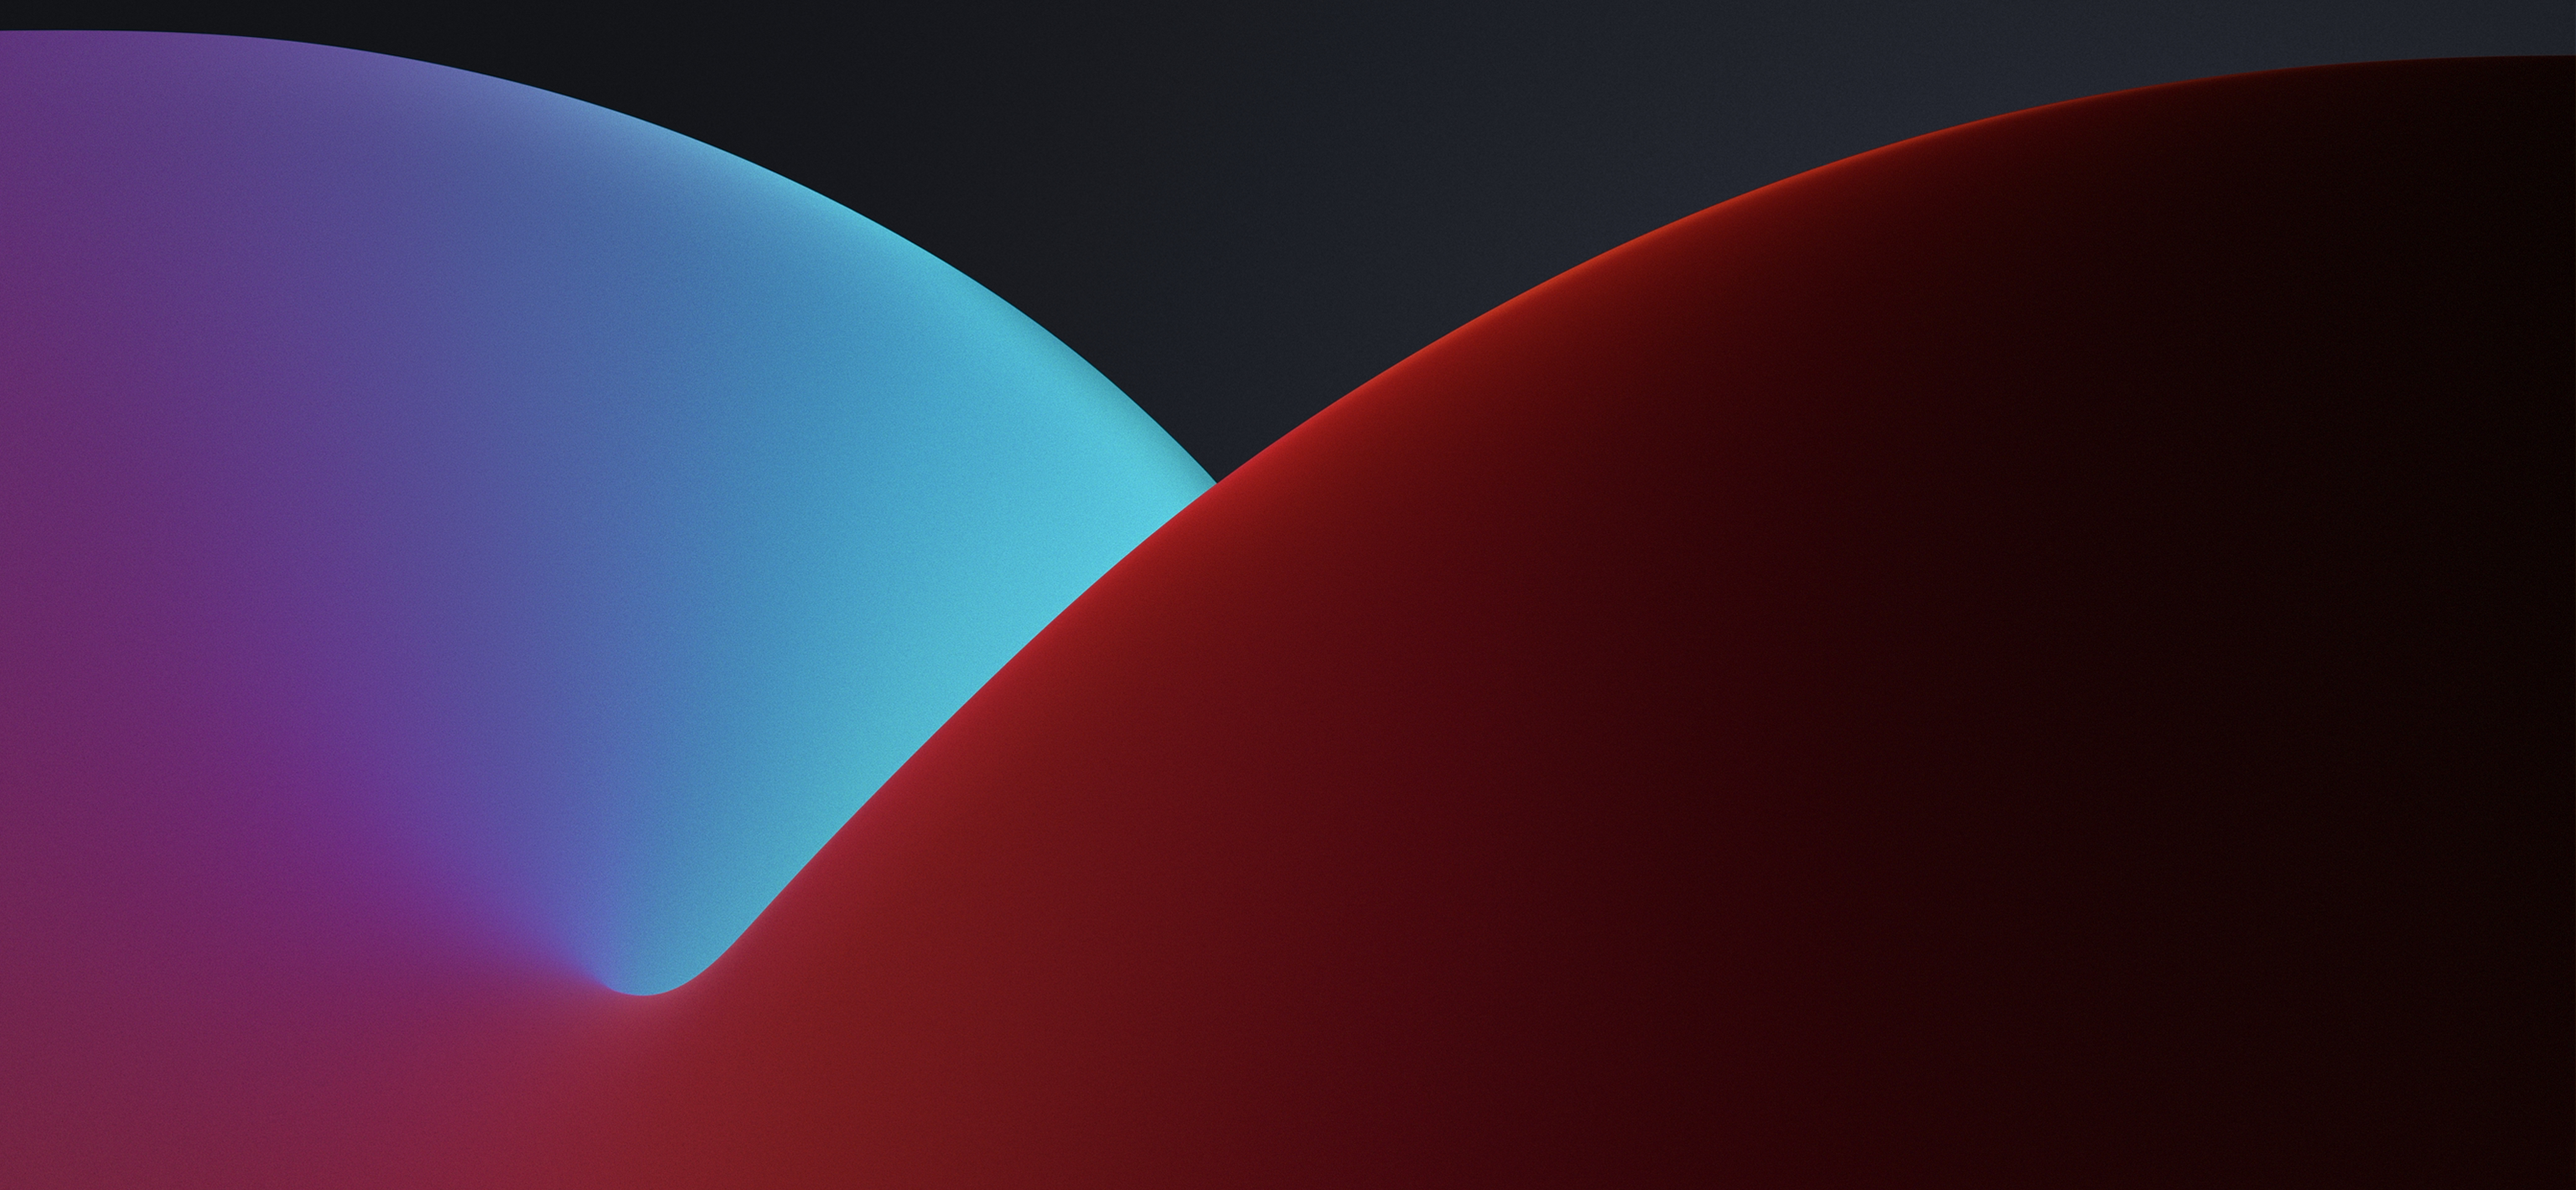 Ios 14 Stock Wallpaper Red Blue Dark Hd Wallpaper Background Image 3073x1420 Id 1083676 Wallpaper Abyss